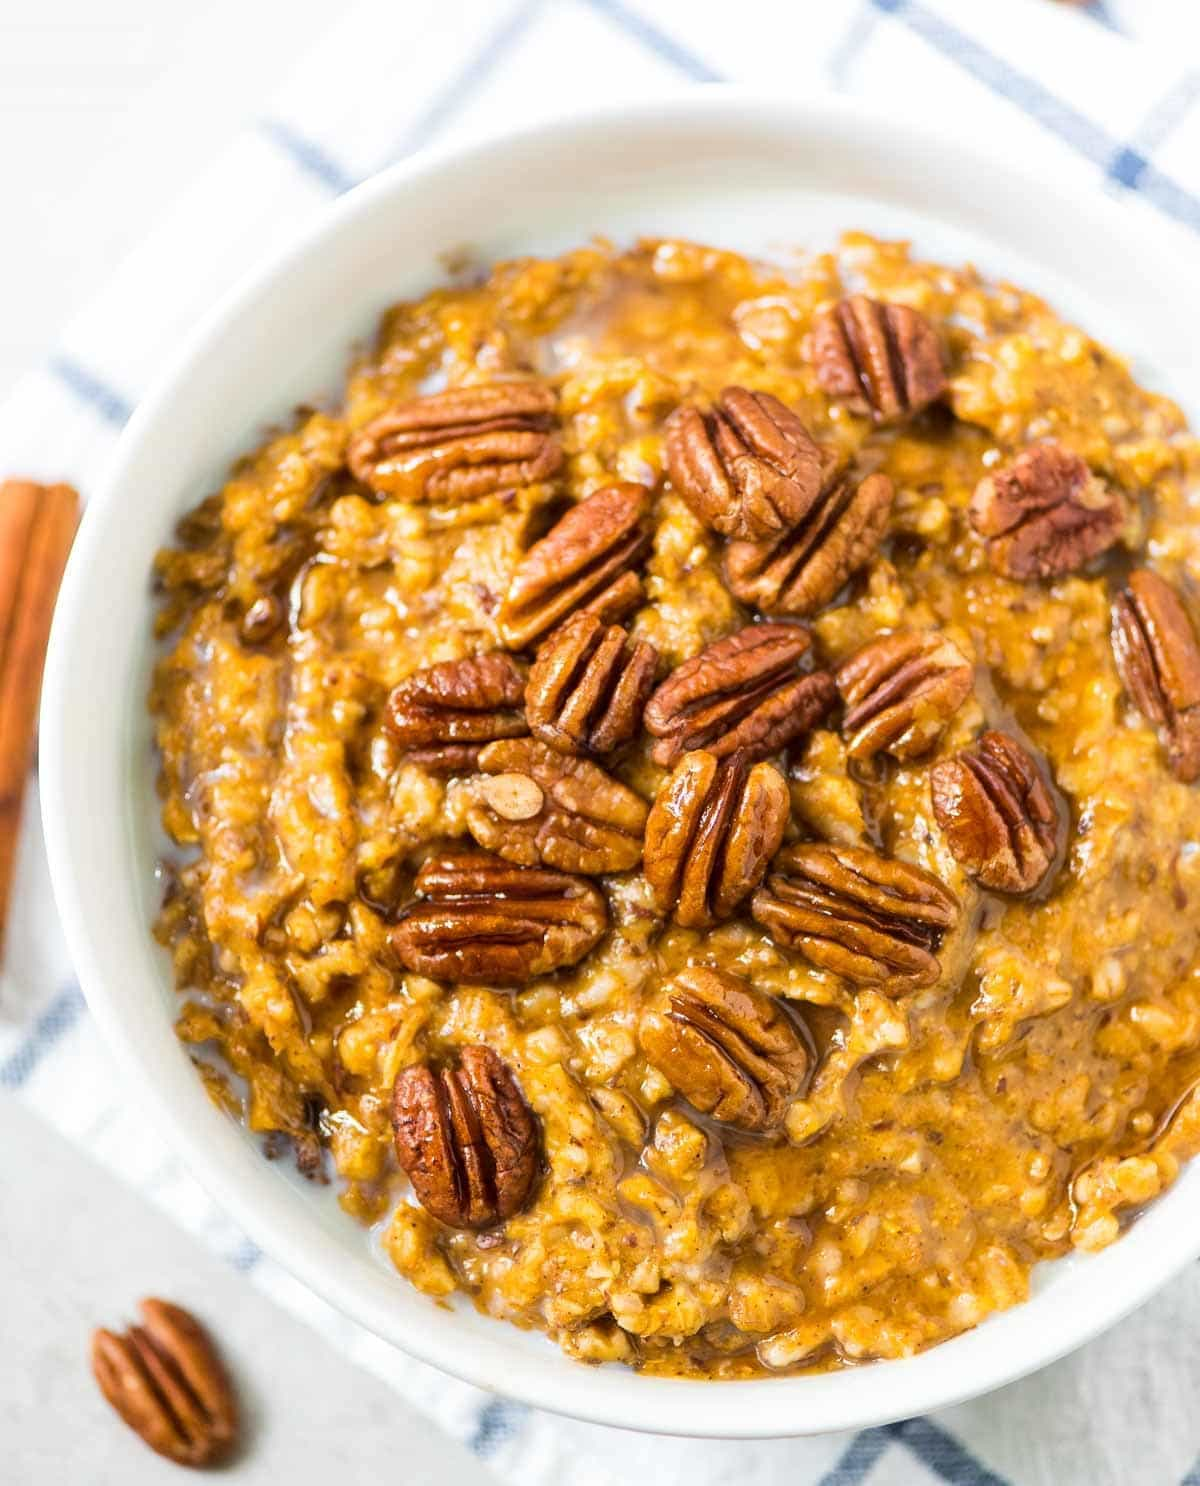 Pumpkin Overnight Oats ~ healthy crock pot steel cut oats made with warm spices, pumpkin and maple syrup. This recipe is easy to throw in the slow cooker before bed for an effortless breakfast that can last all week or feed a crowd! @wellplated